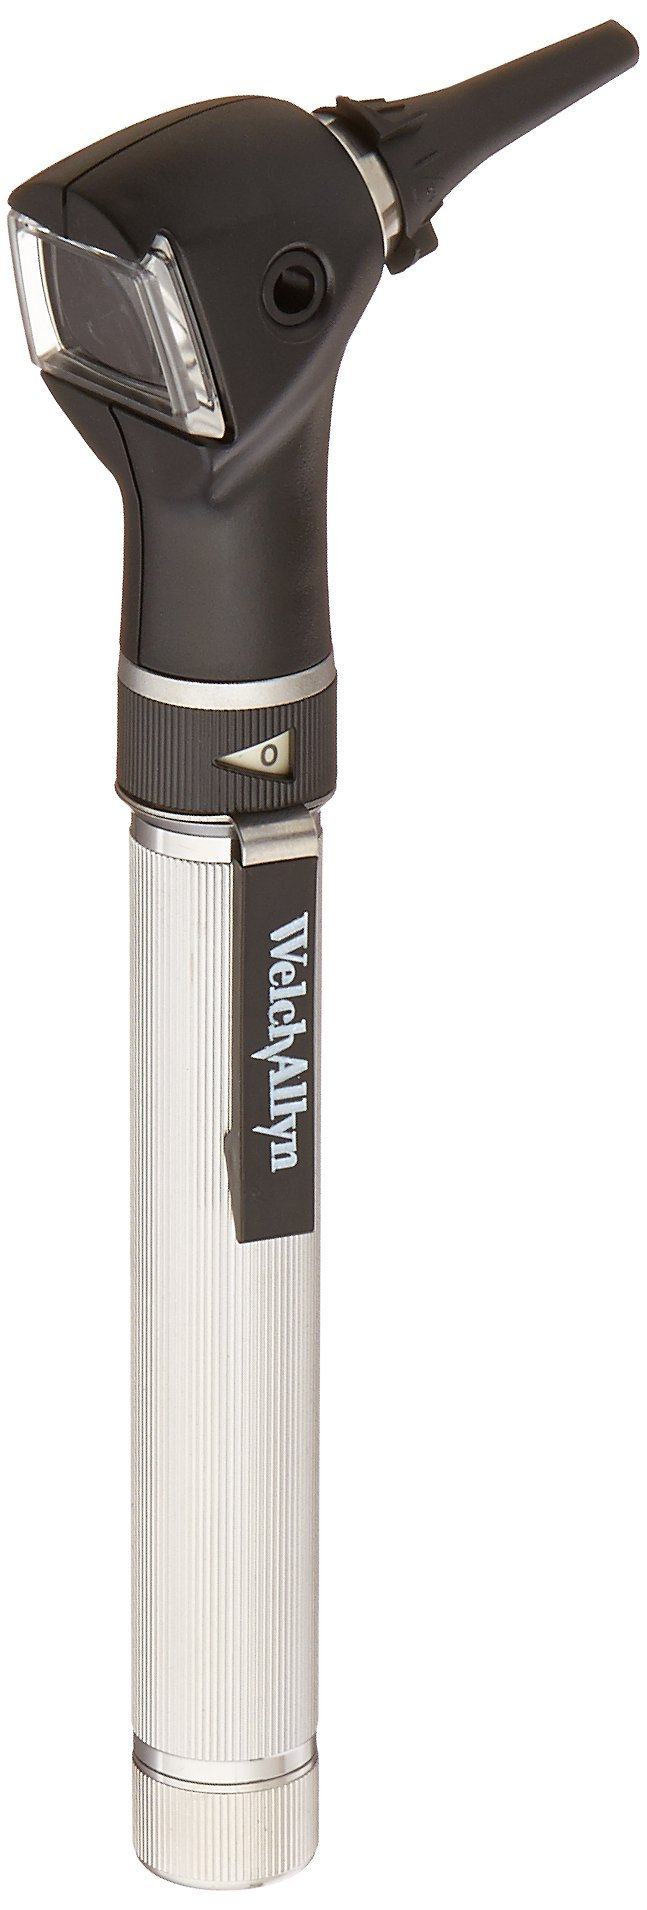 Welch Allyn 22822 PocketScope Otoscope with''AA'' Handle and Hard Case by Welch Allyn (Image #1)